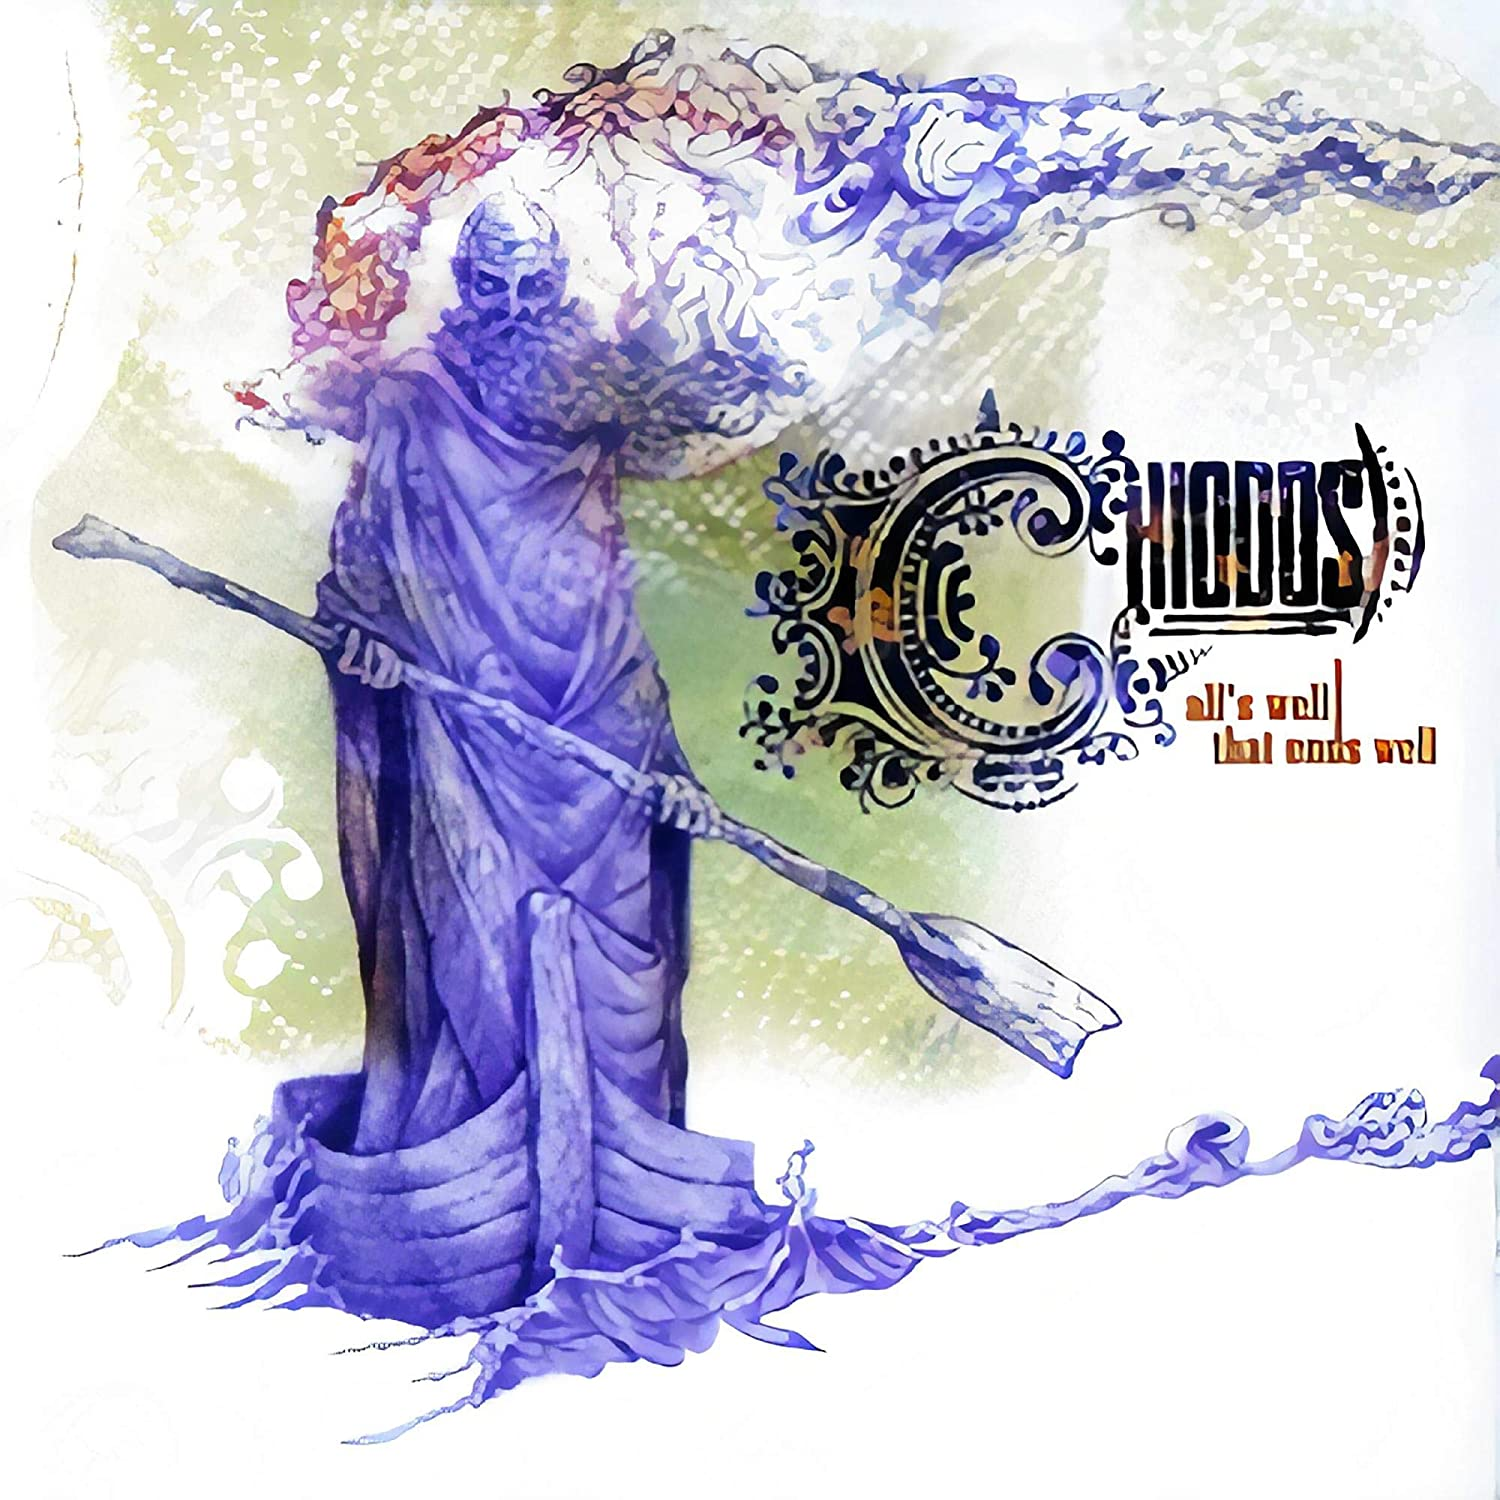 Chiodos - All's Well That Ends Well [LP] (Pink Vinyl, Breast Cancer charity release, limited to 500)